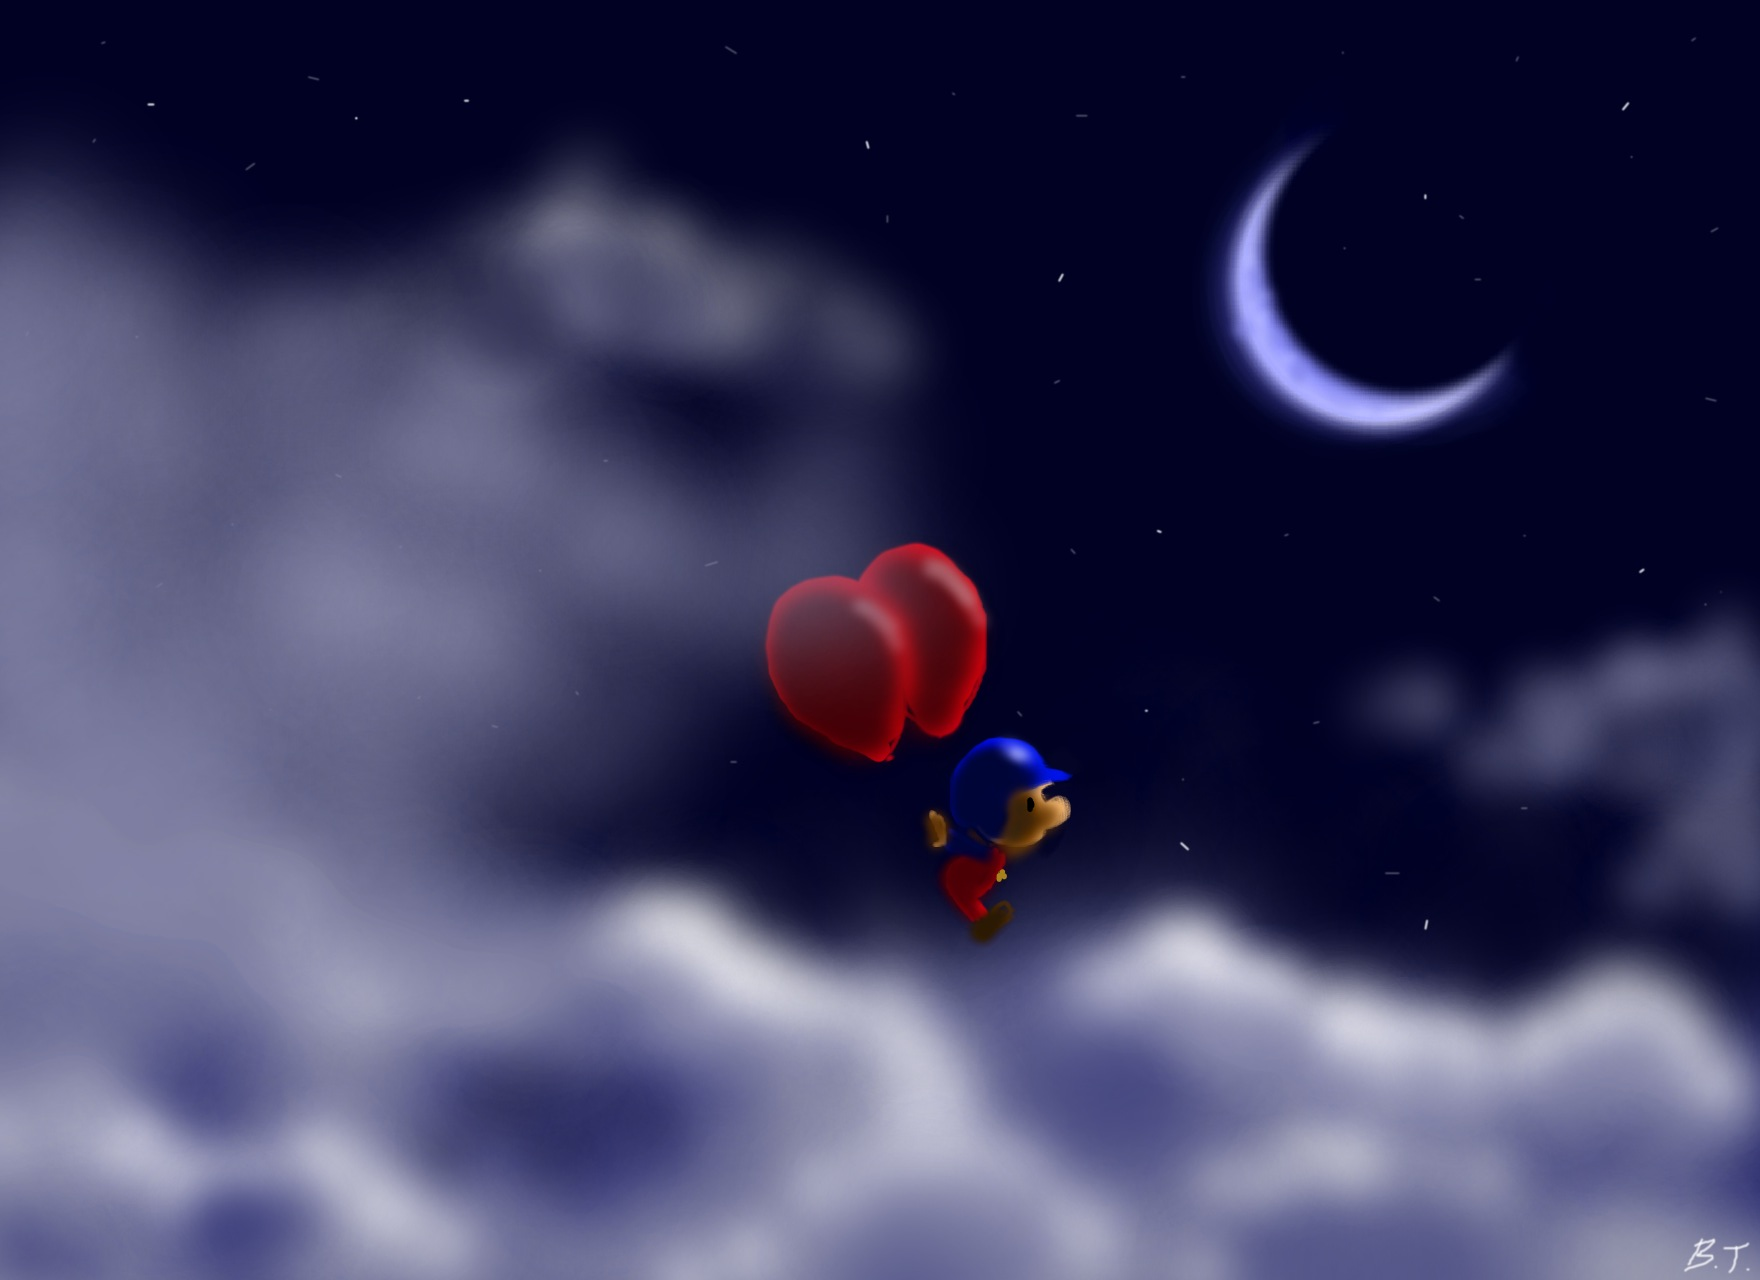 Balloon Fight Above The Clouds